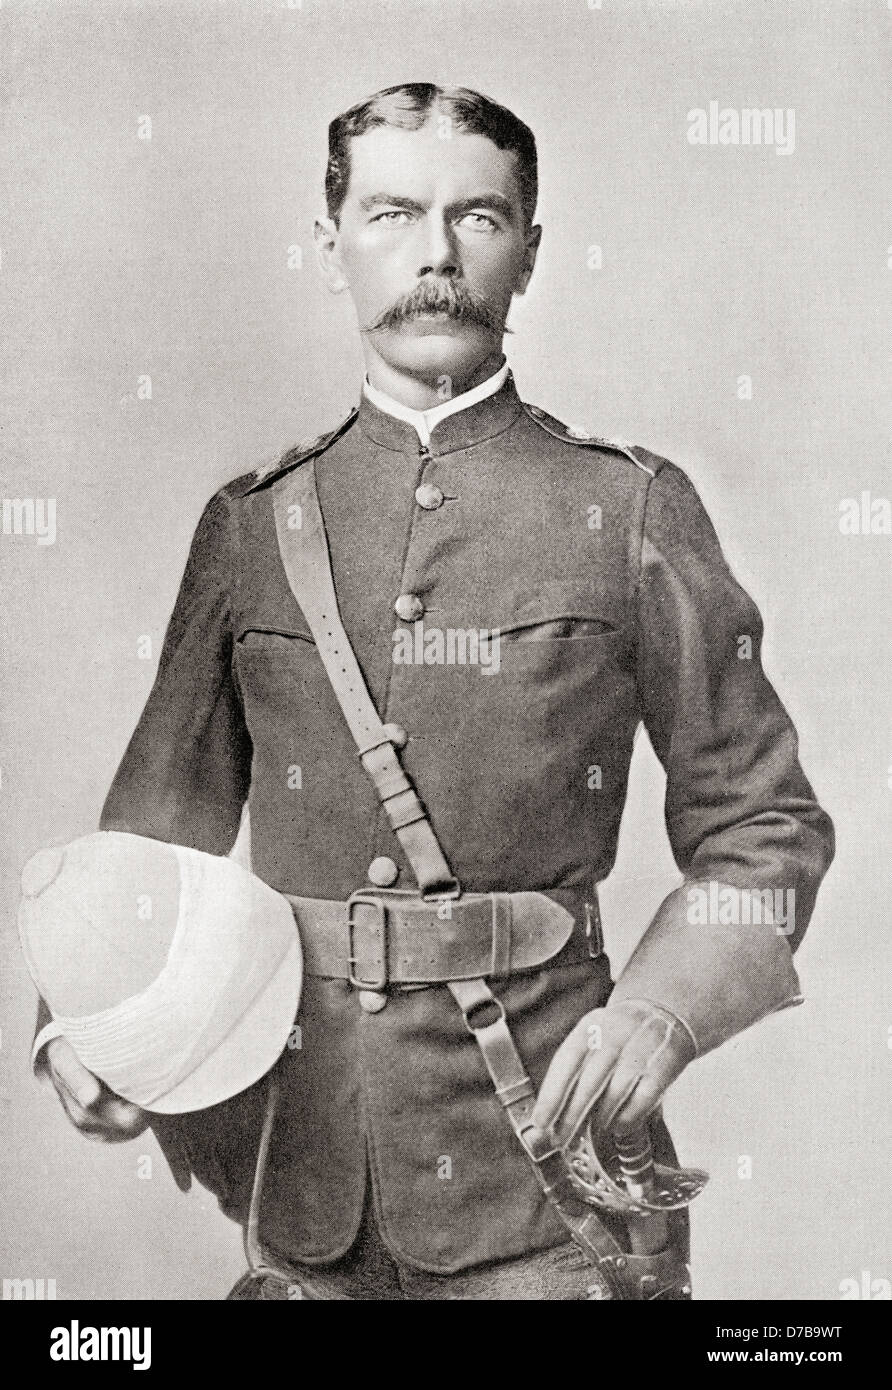 Lord Kitchener in 1882 as Major of the Egyptian Cavalry. . Field Marshal Horatio Herbert Kitchener, 1st Earl Kitchener, - Stock Image